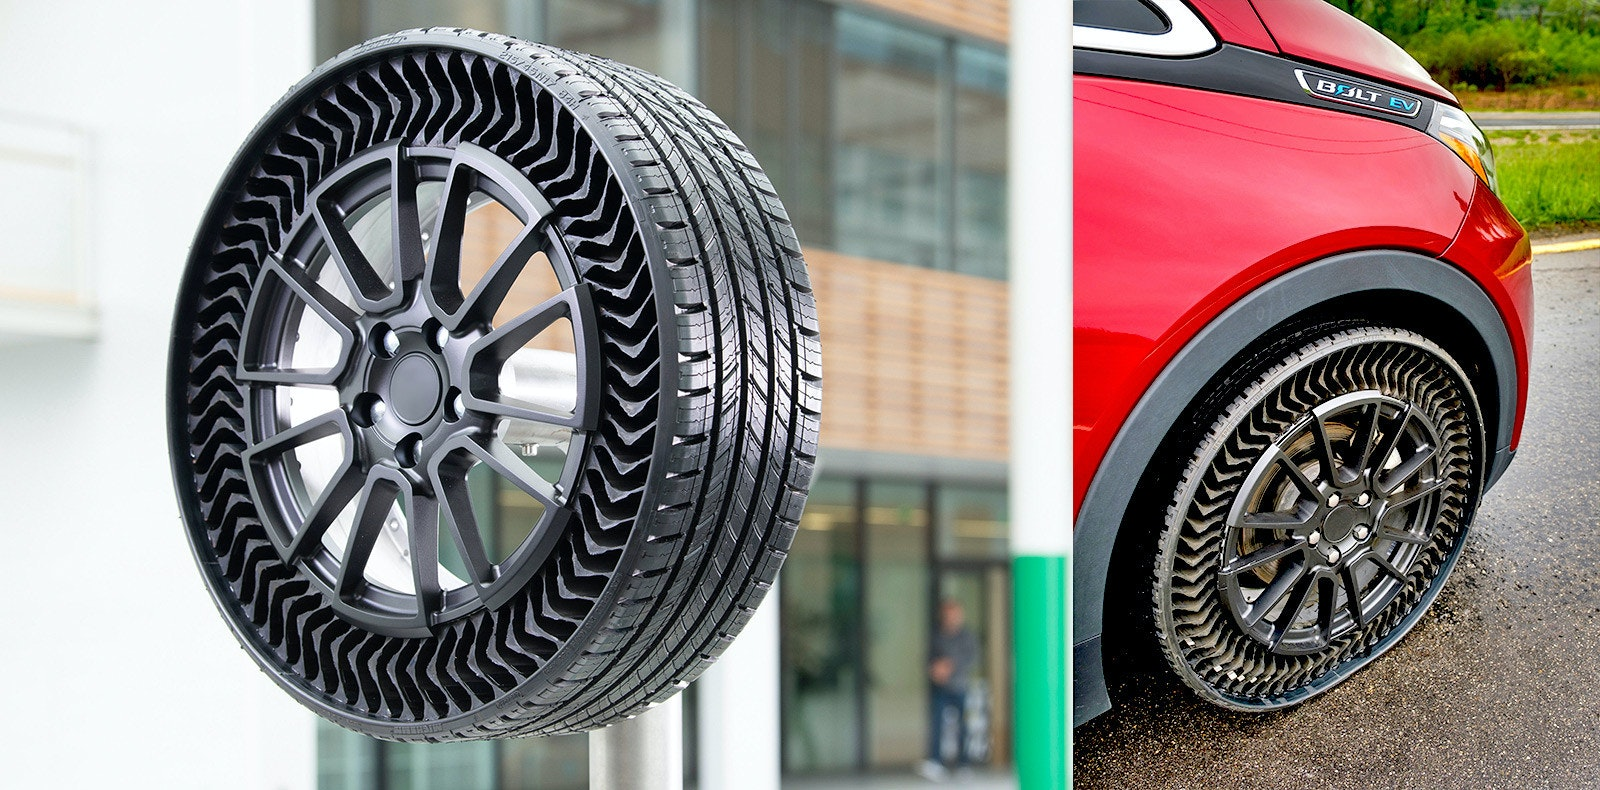 Tread, Car, Formula One tyres, General Motors, , Motor Vehicle Tires, , Alloy wheel, Spoke, Automotive design, alloy wheel, Tire, Alloy wheel, Rim, Automotive tire, Wheel, Spoke, Auto part, Synthetic rubber, Automotive wheel system, Vehicle